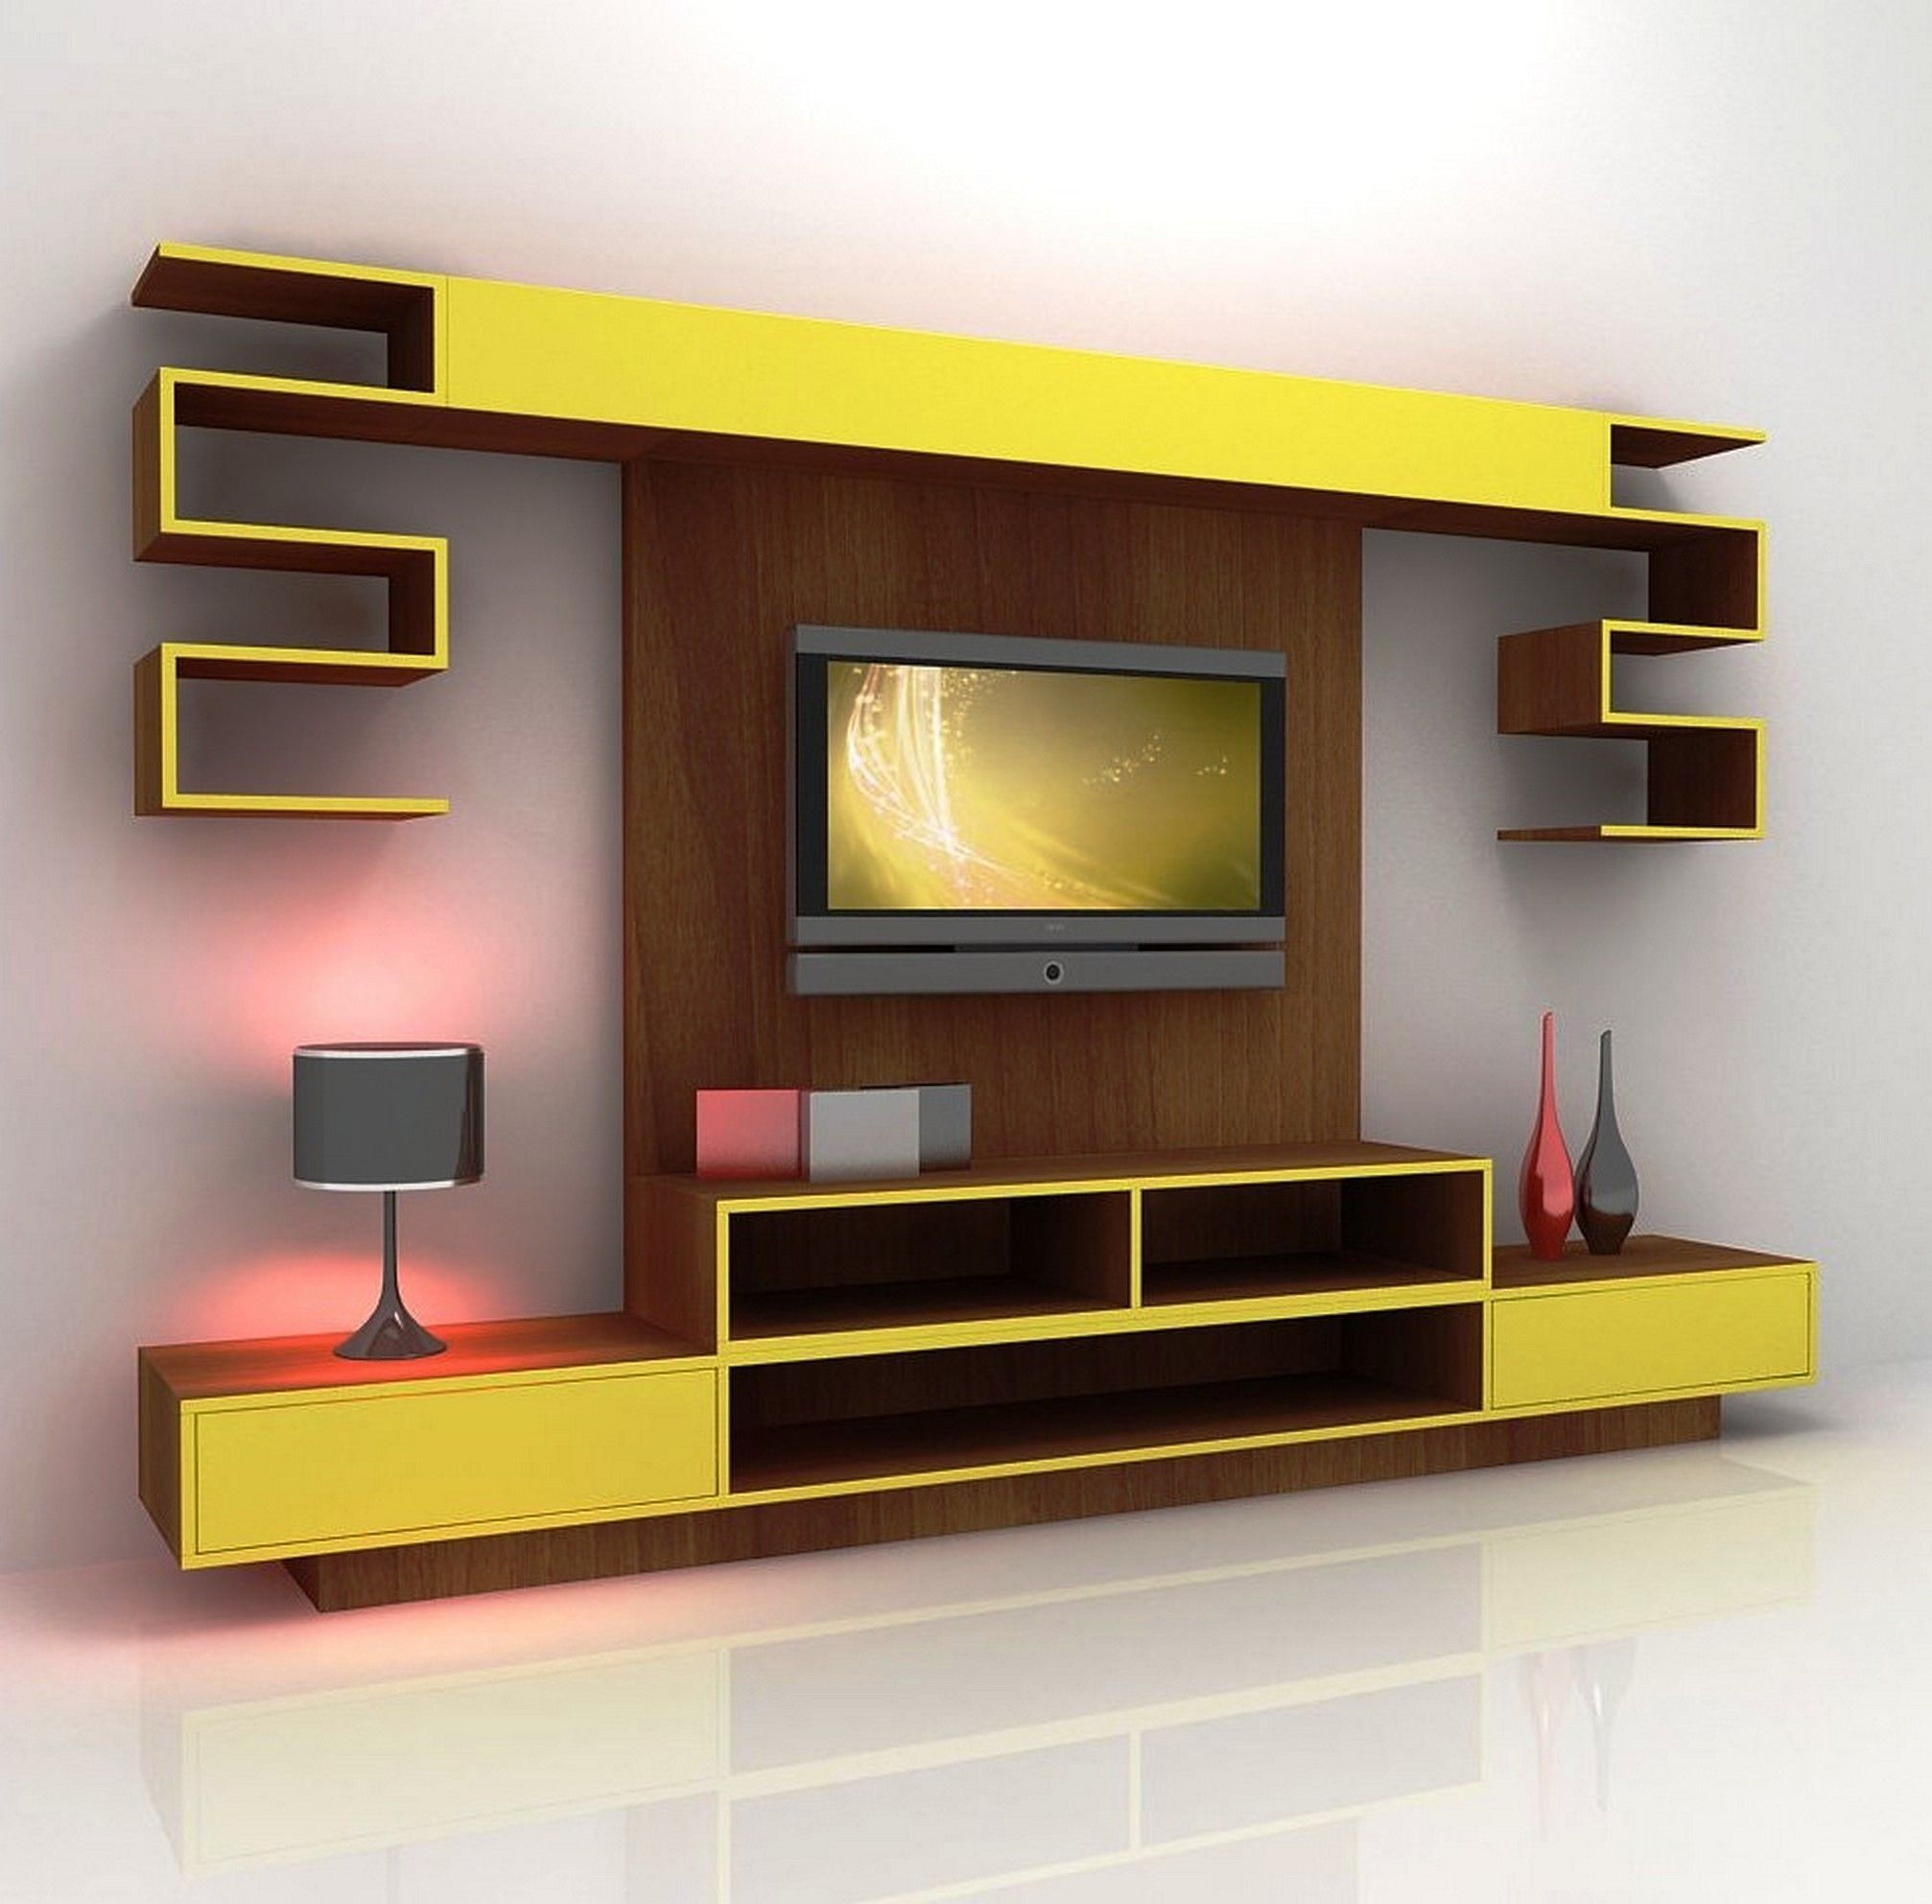 Flat Screen Tv Wall Mount Design Ideas